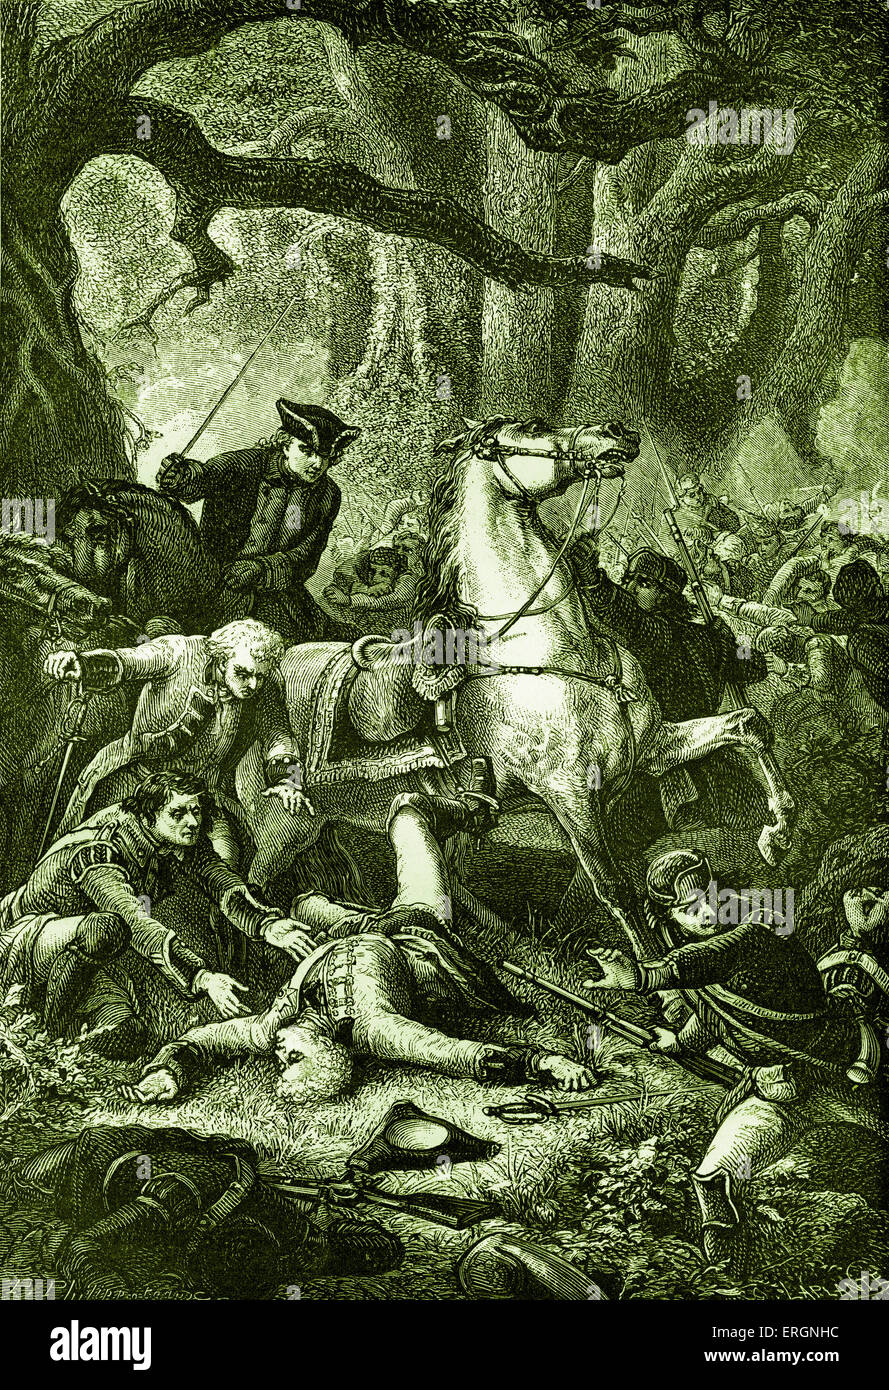 General Edward Braddock, commander-in-chief of the British forces in North America at the start of the French and - Stock Image